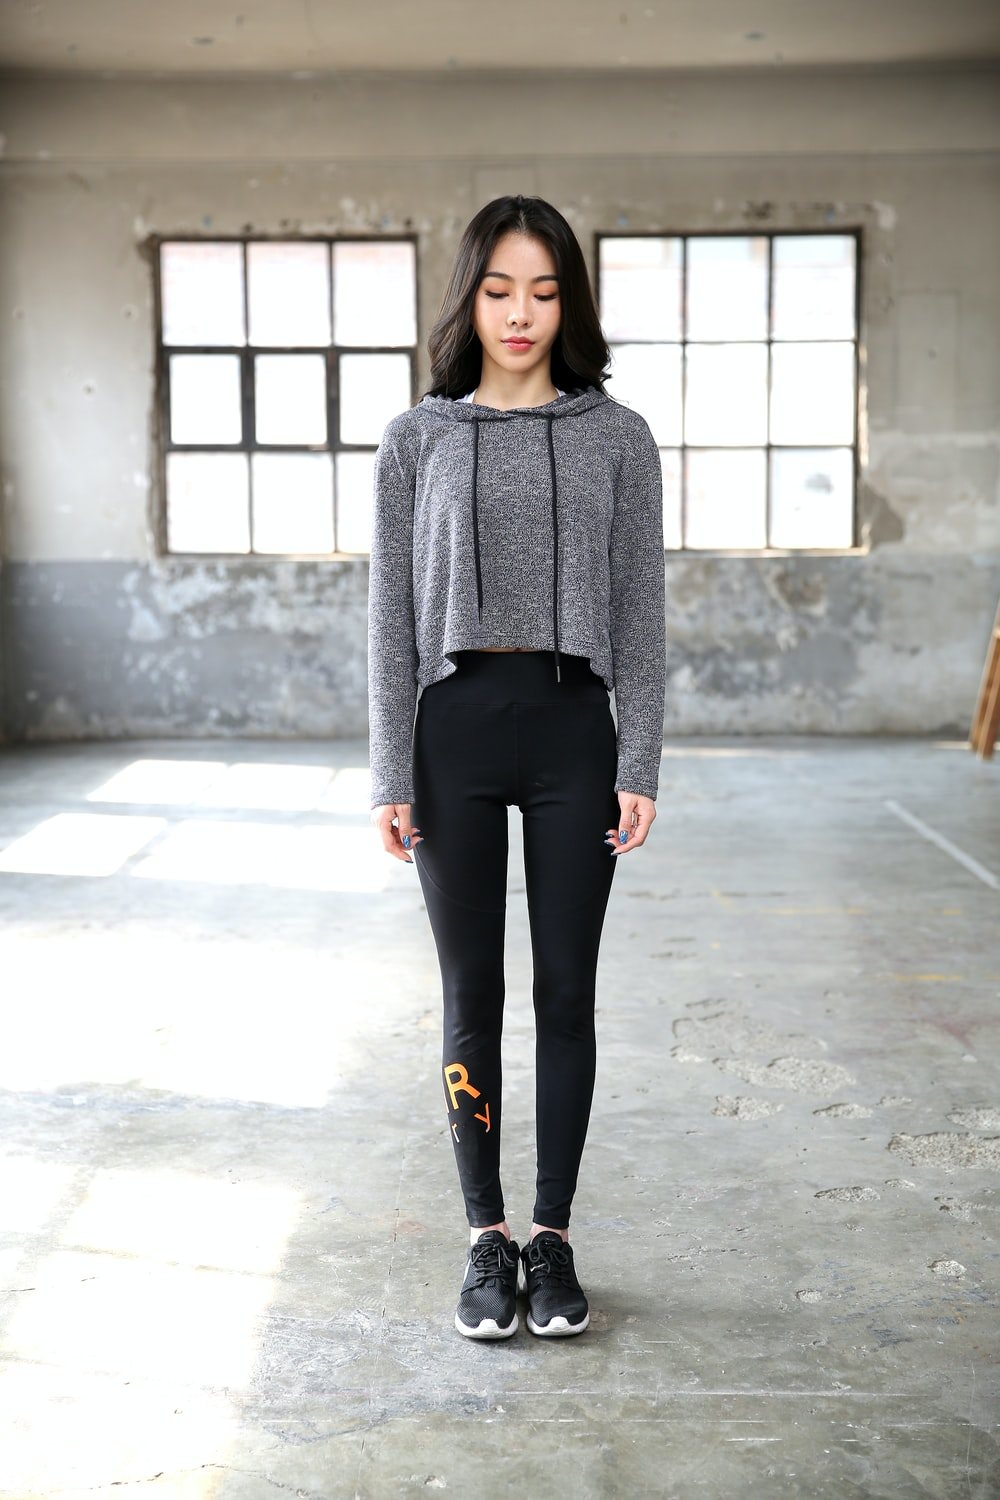 woman in gray sweater and black pants standing on gray concrete floor